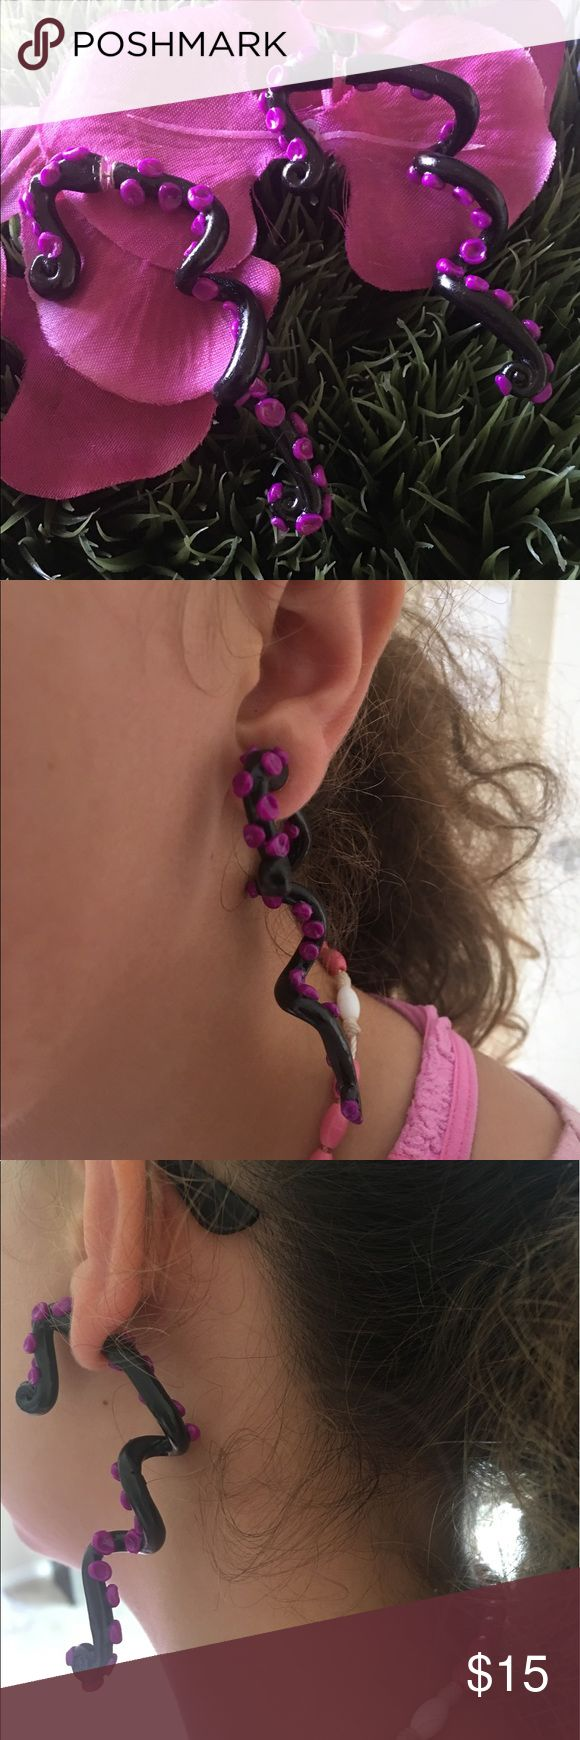 🦑Black and Pink Octopus Legs' Earrings🦑 Handmade earrings made of polymeric clay. The earrings will always have imperfections because my style is to focus on making earrings that look different and some that look perfect without imperfections. It's a mixed of both. Handmade Jewelry Earrings